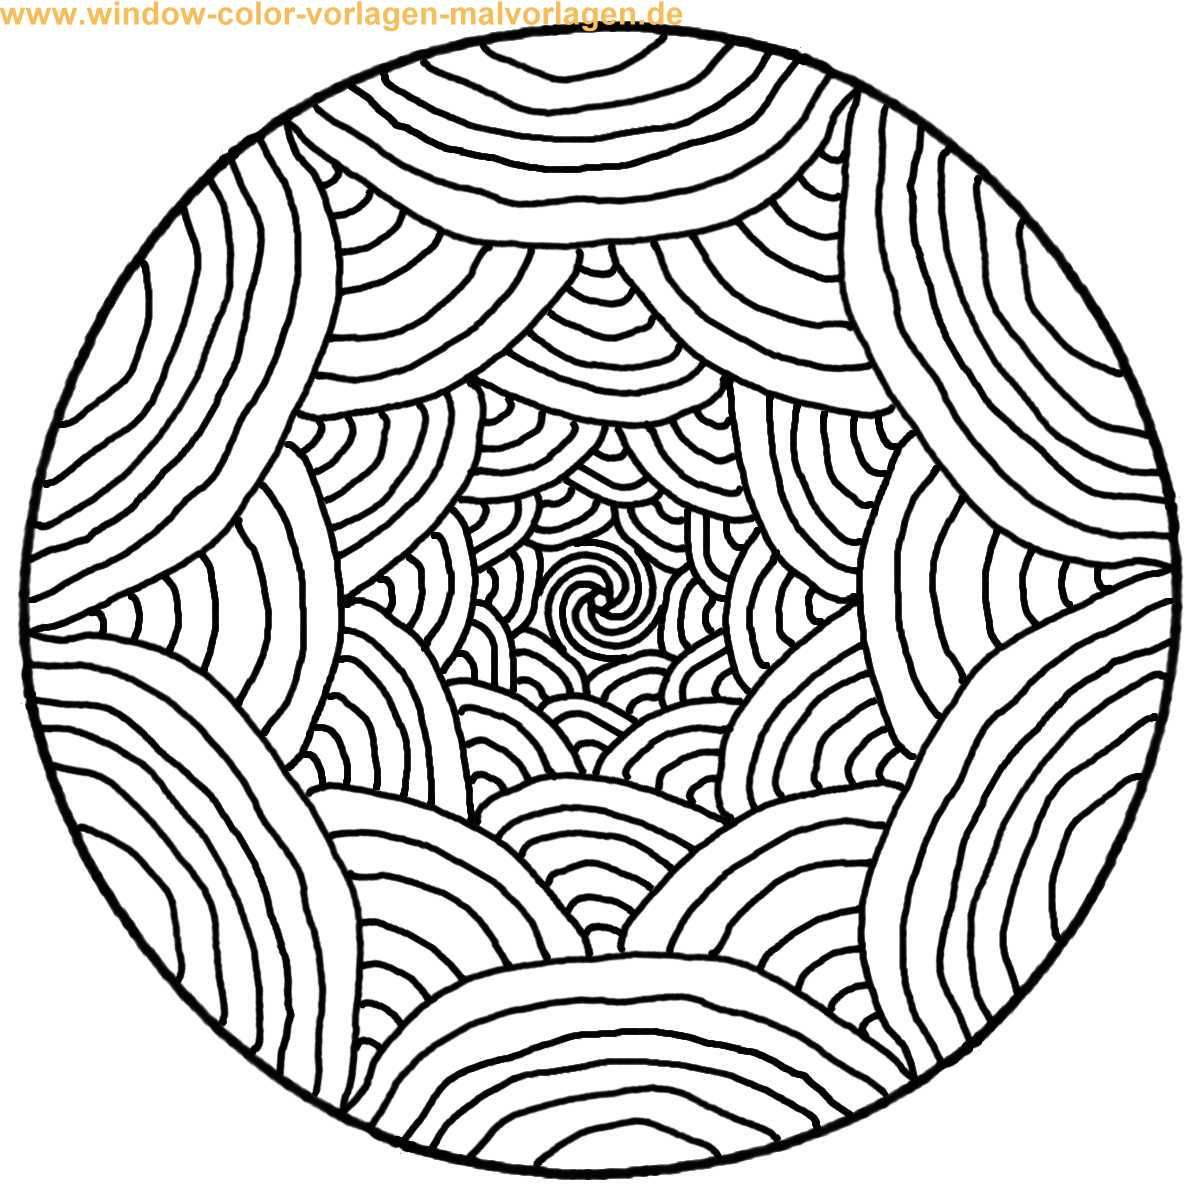 mandalas to print and color | Malvorlage | Ausmalbild | Mandala ...